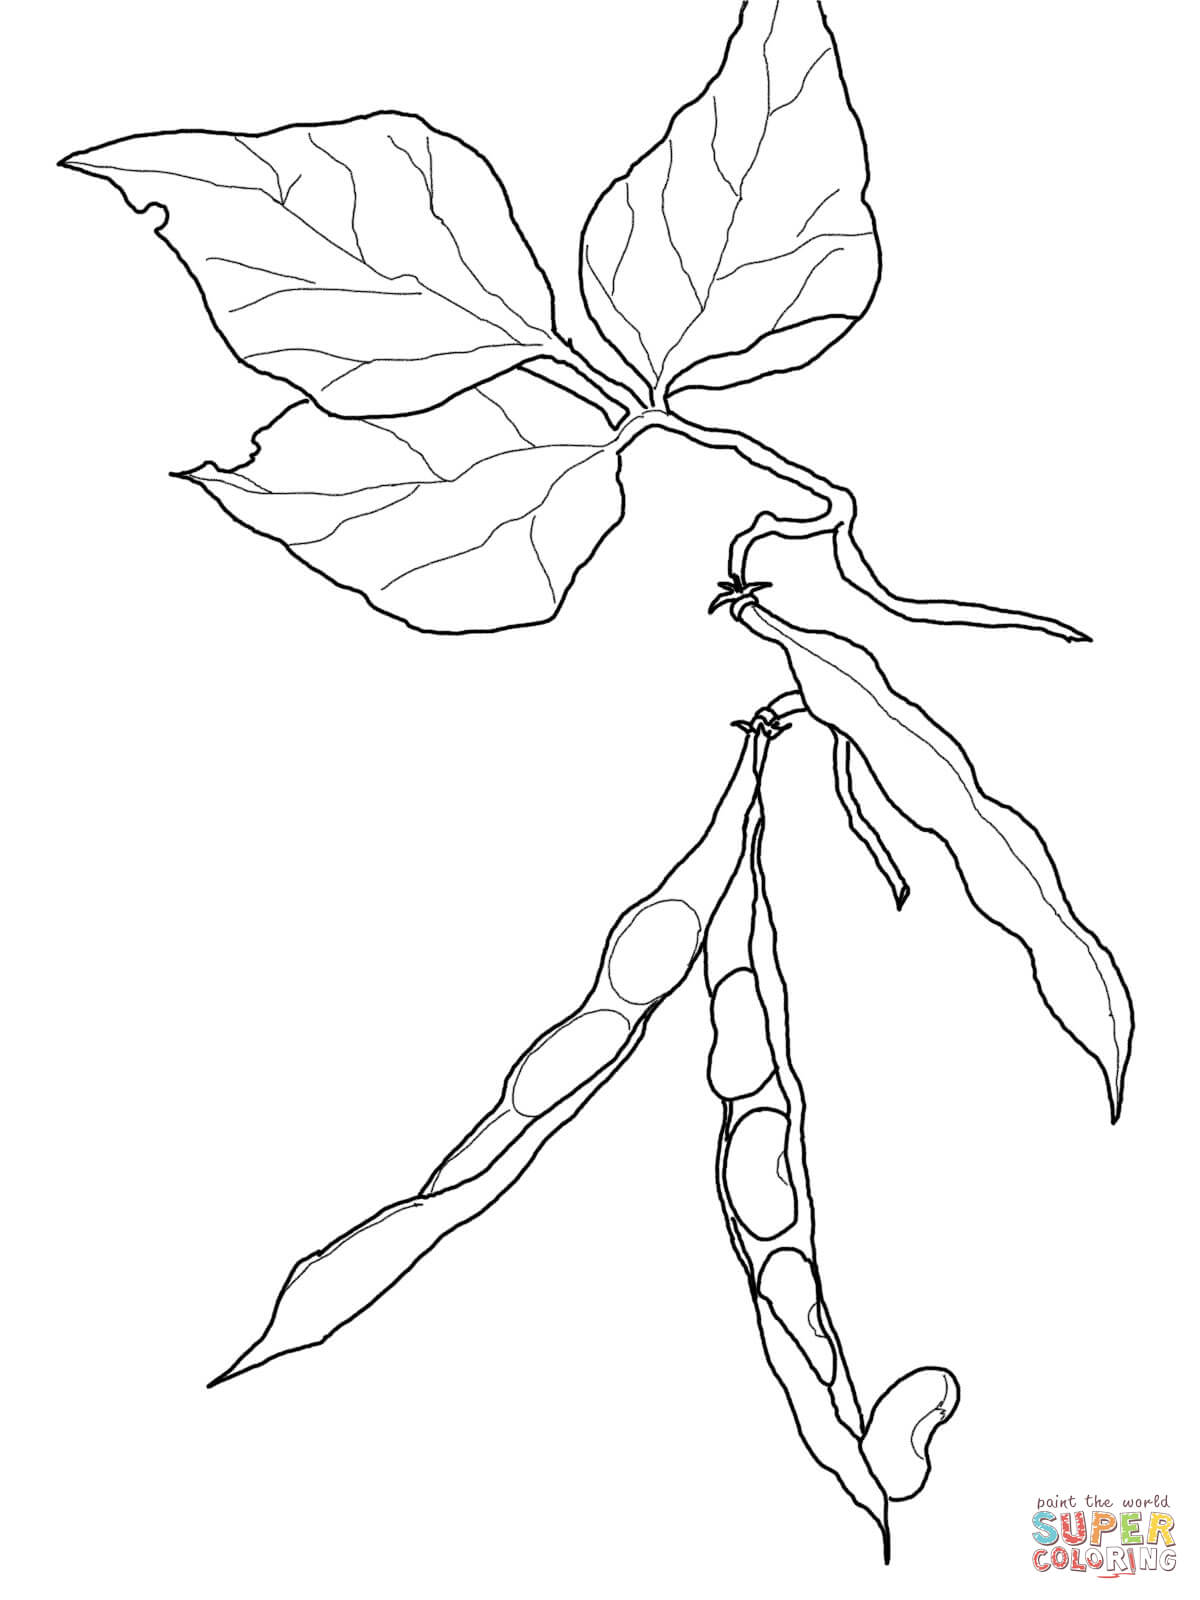 pea sign coloring pages - photo#47